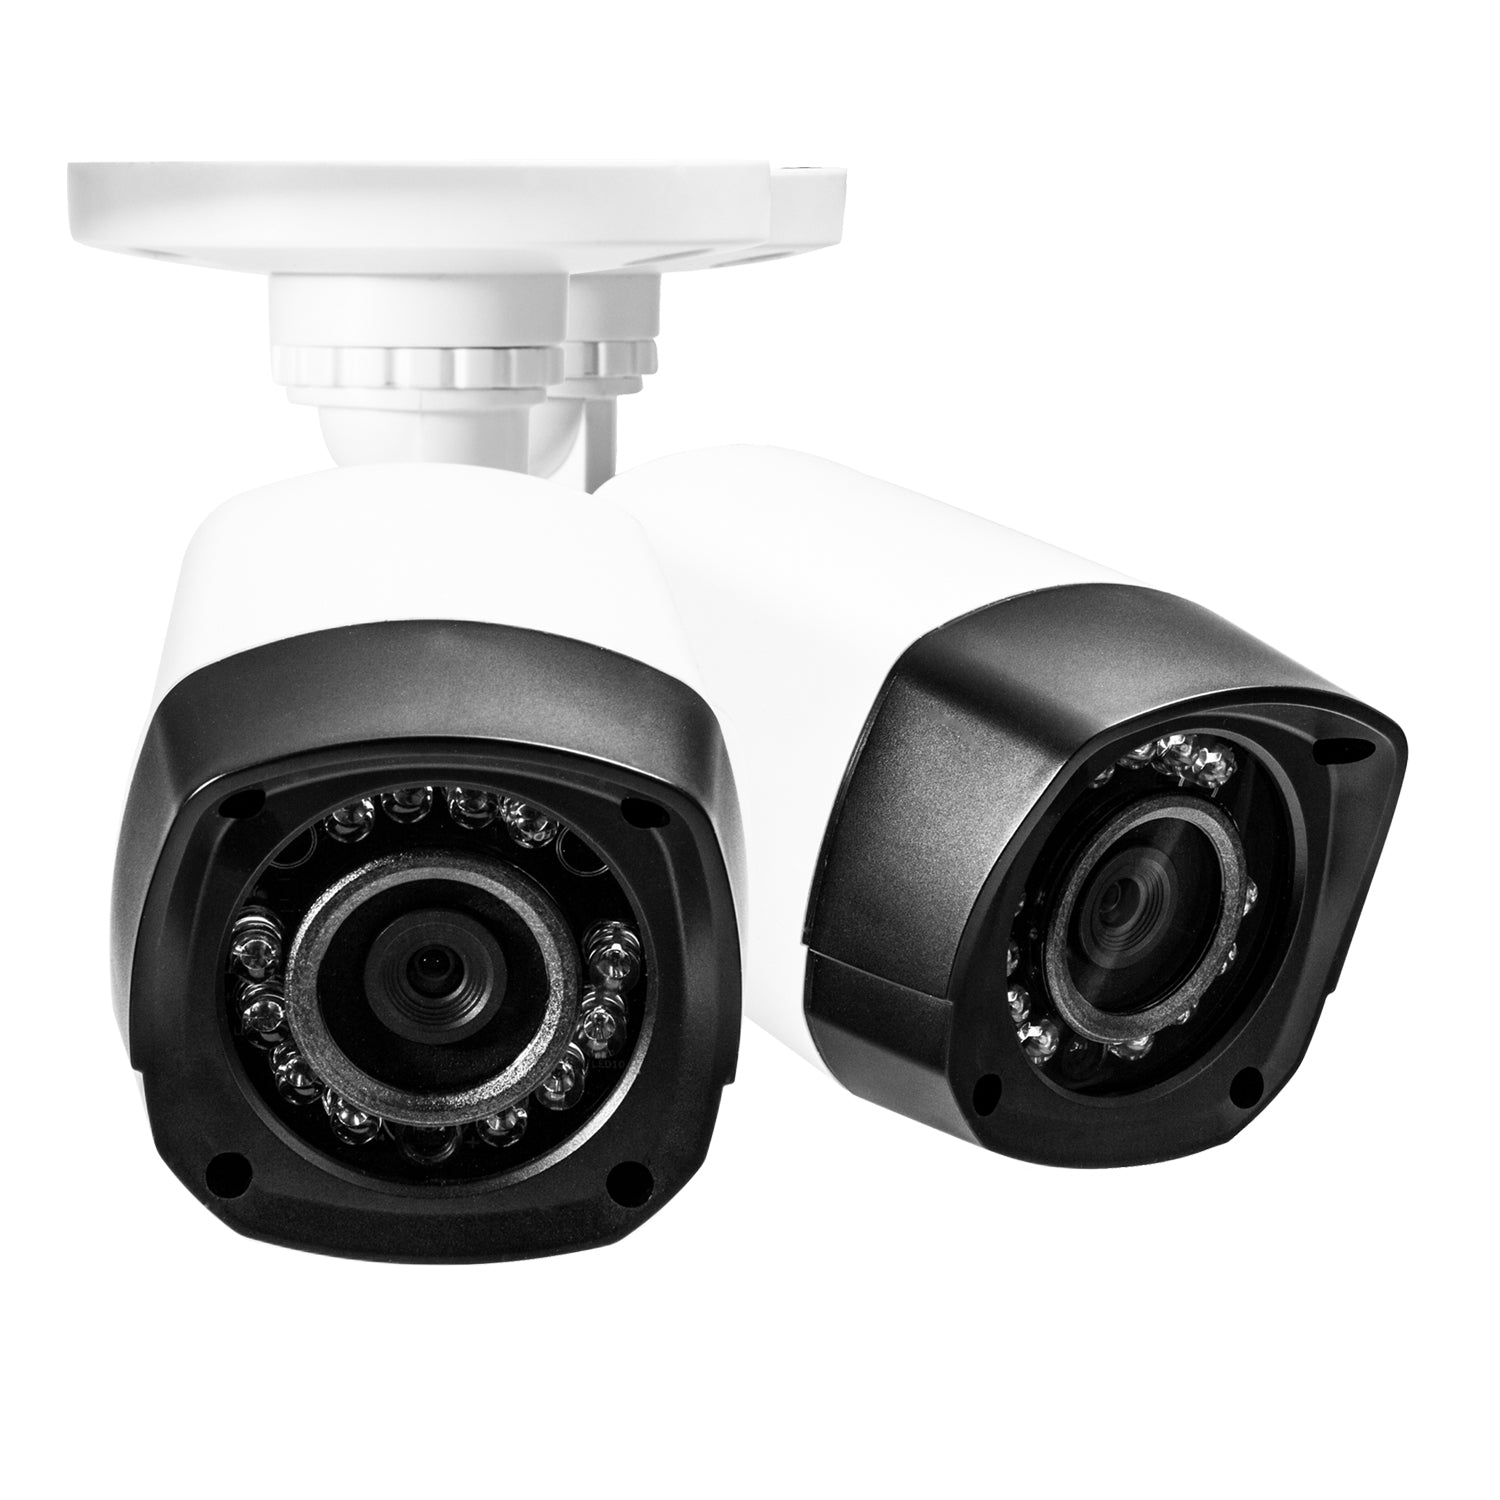 720p Analog HD Bullet Security Camera (QCA7207B) 90 DAY WARRANTY Analog HD Camera  - Q-See